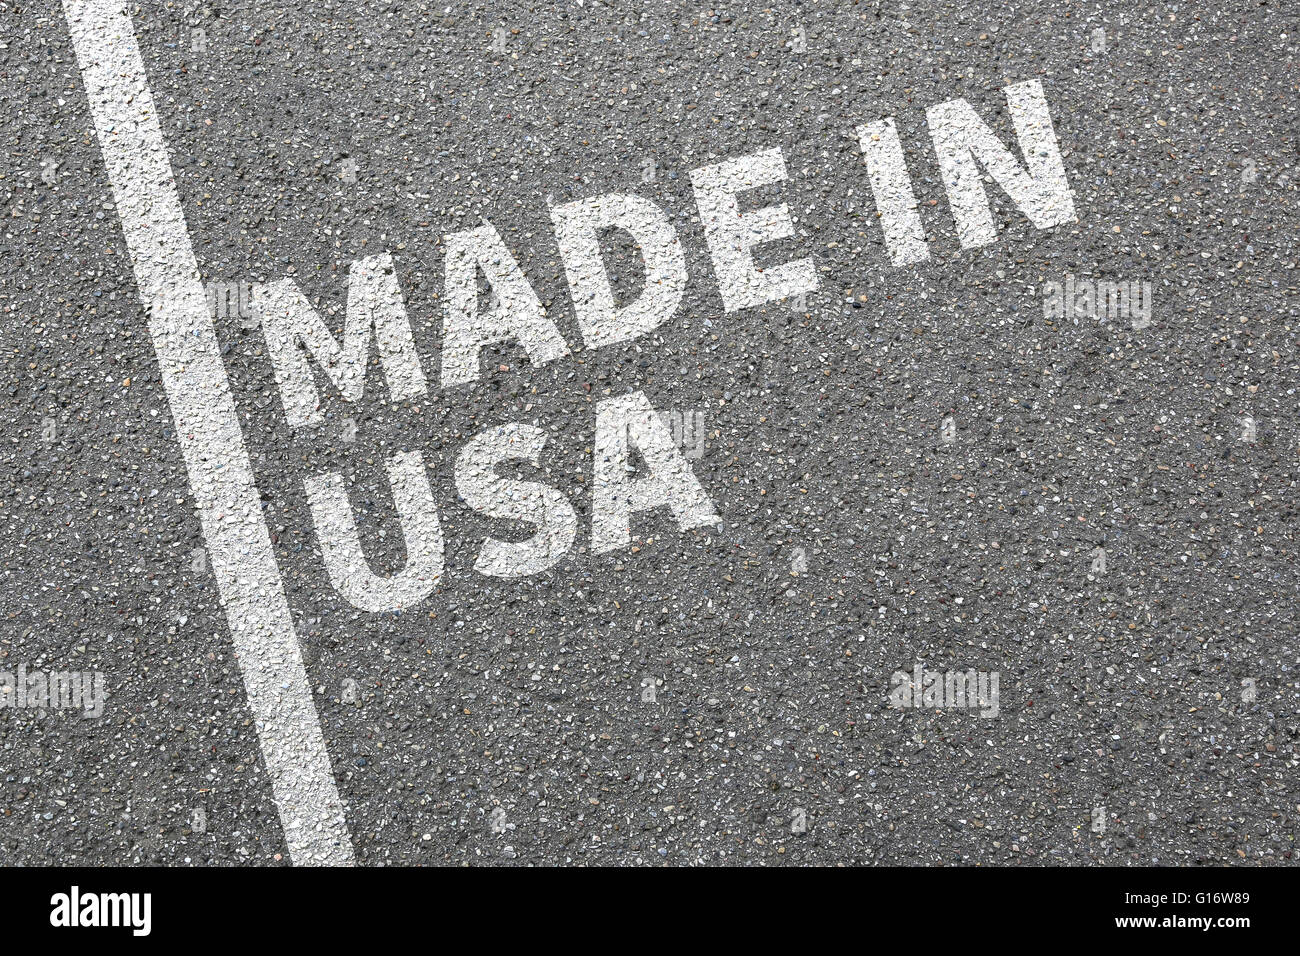 Made in USA product quality marketing company concept - Stock Image